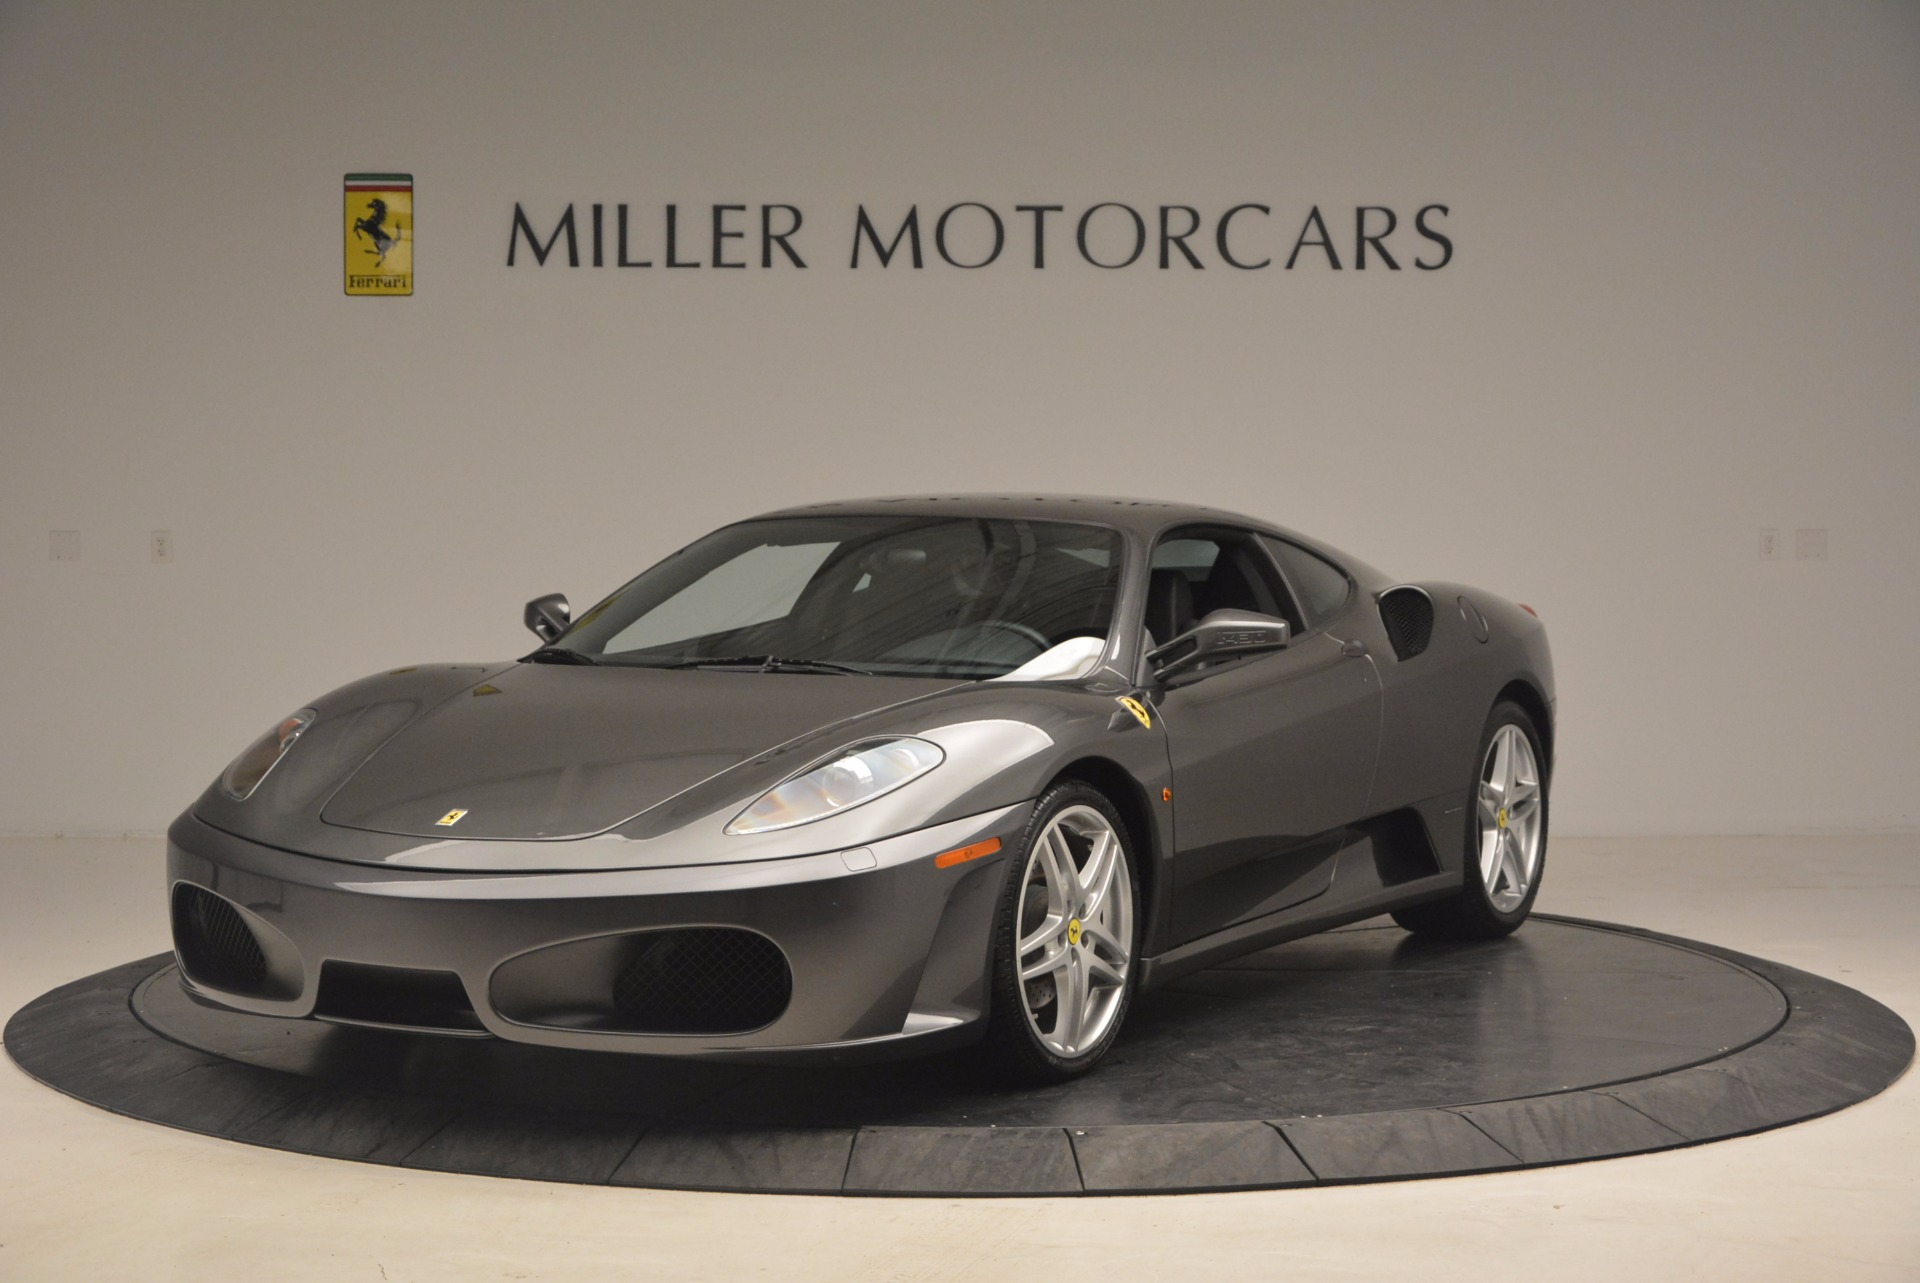 Used 2005 Ferrari F430 6-Speed Manual for sale Sold at Maserati of Greenwich in Greenwich CT 06830 1